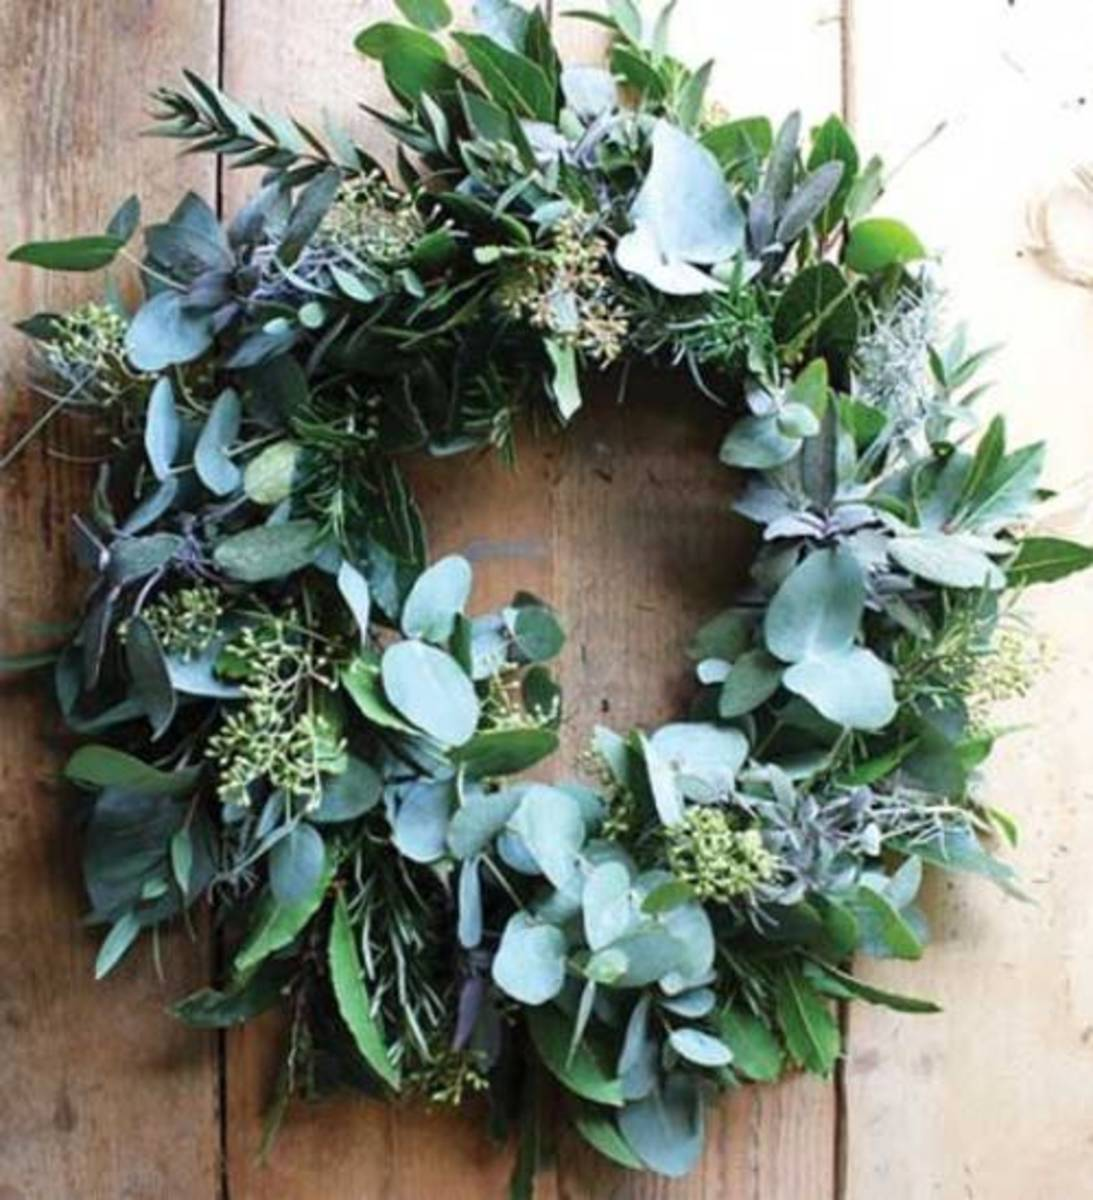 Foliage for greens, herbs and succulents to for the home with this DIY wreath.